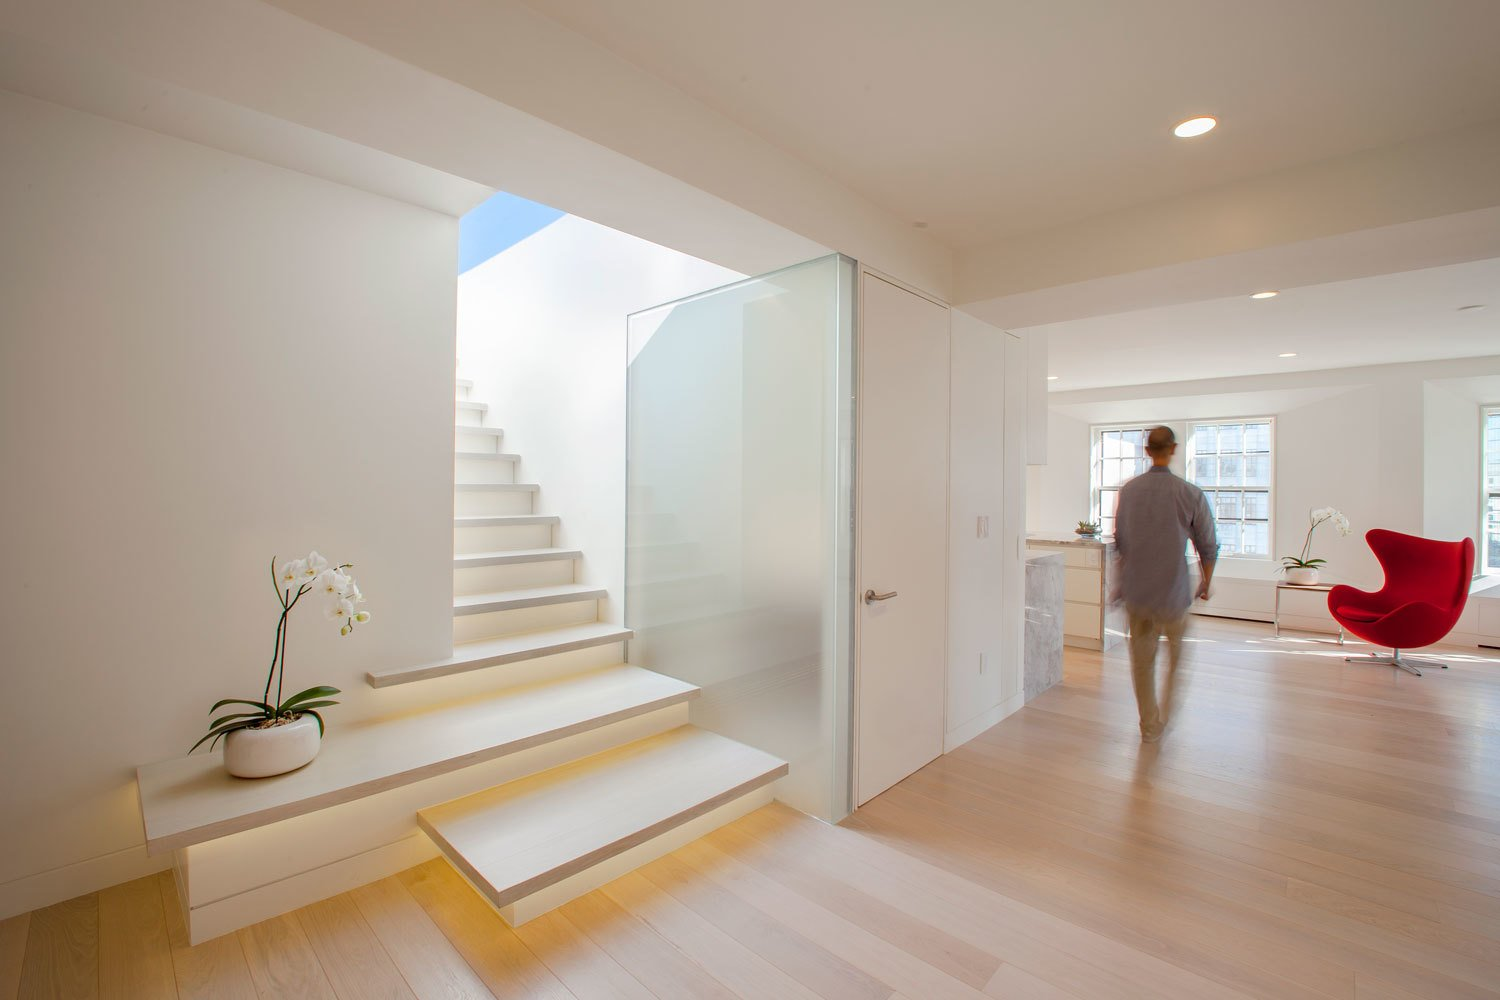 A post-war penthouse in Boston, the Perimeter Loft was given a sleek transformation that favors natural light. A stairwell leads to a roof deck.  Architecture Firm You Should Know: Höweler + Yoon by Allie Weiss